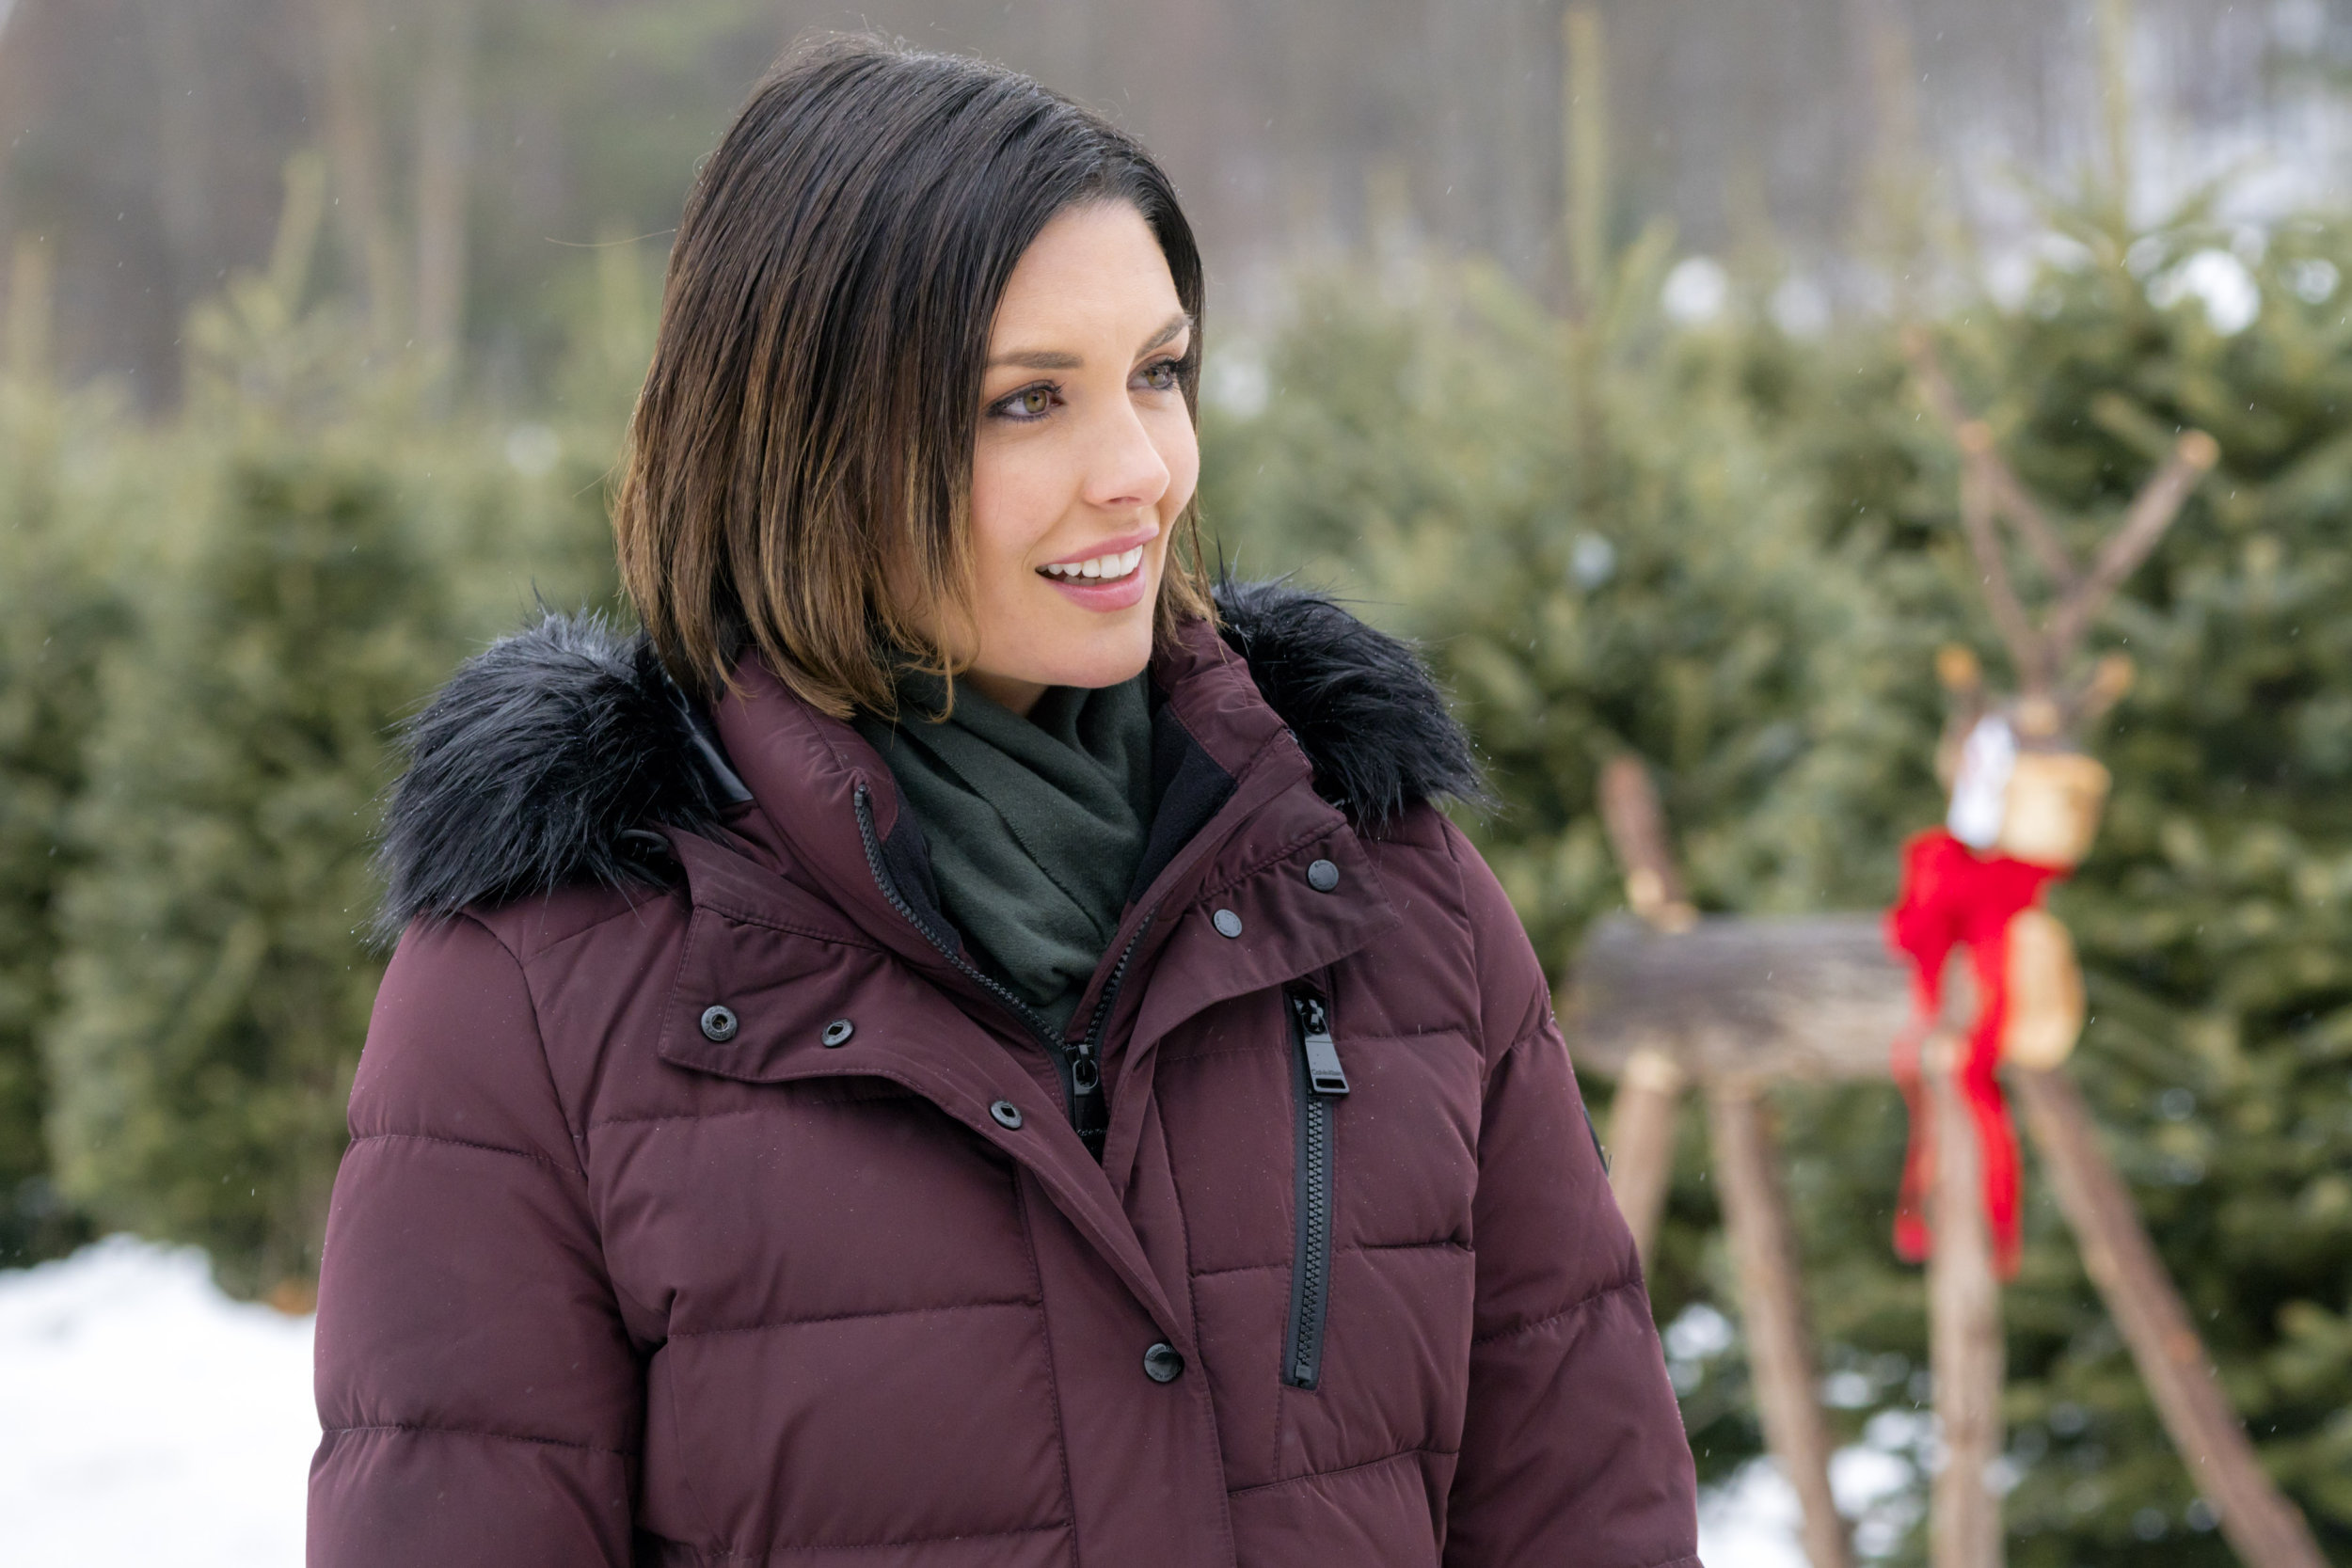 Christmas Festival Of Ice.Taylor Cole As Emma On Christmas Festival Of Ice Hallmark